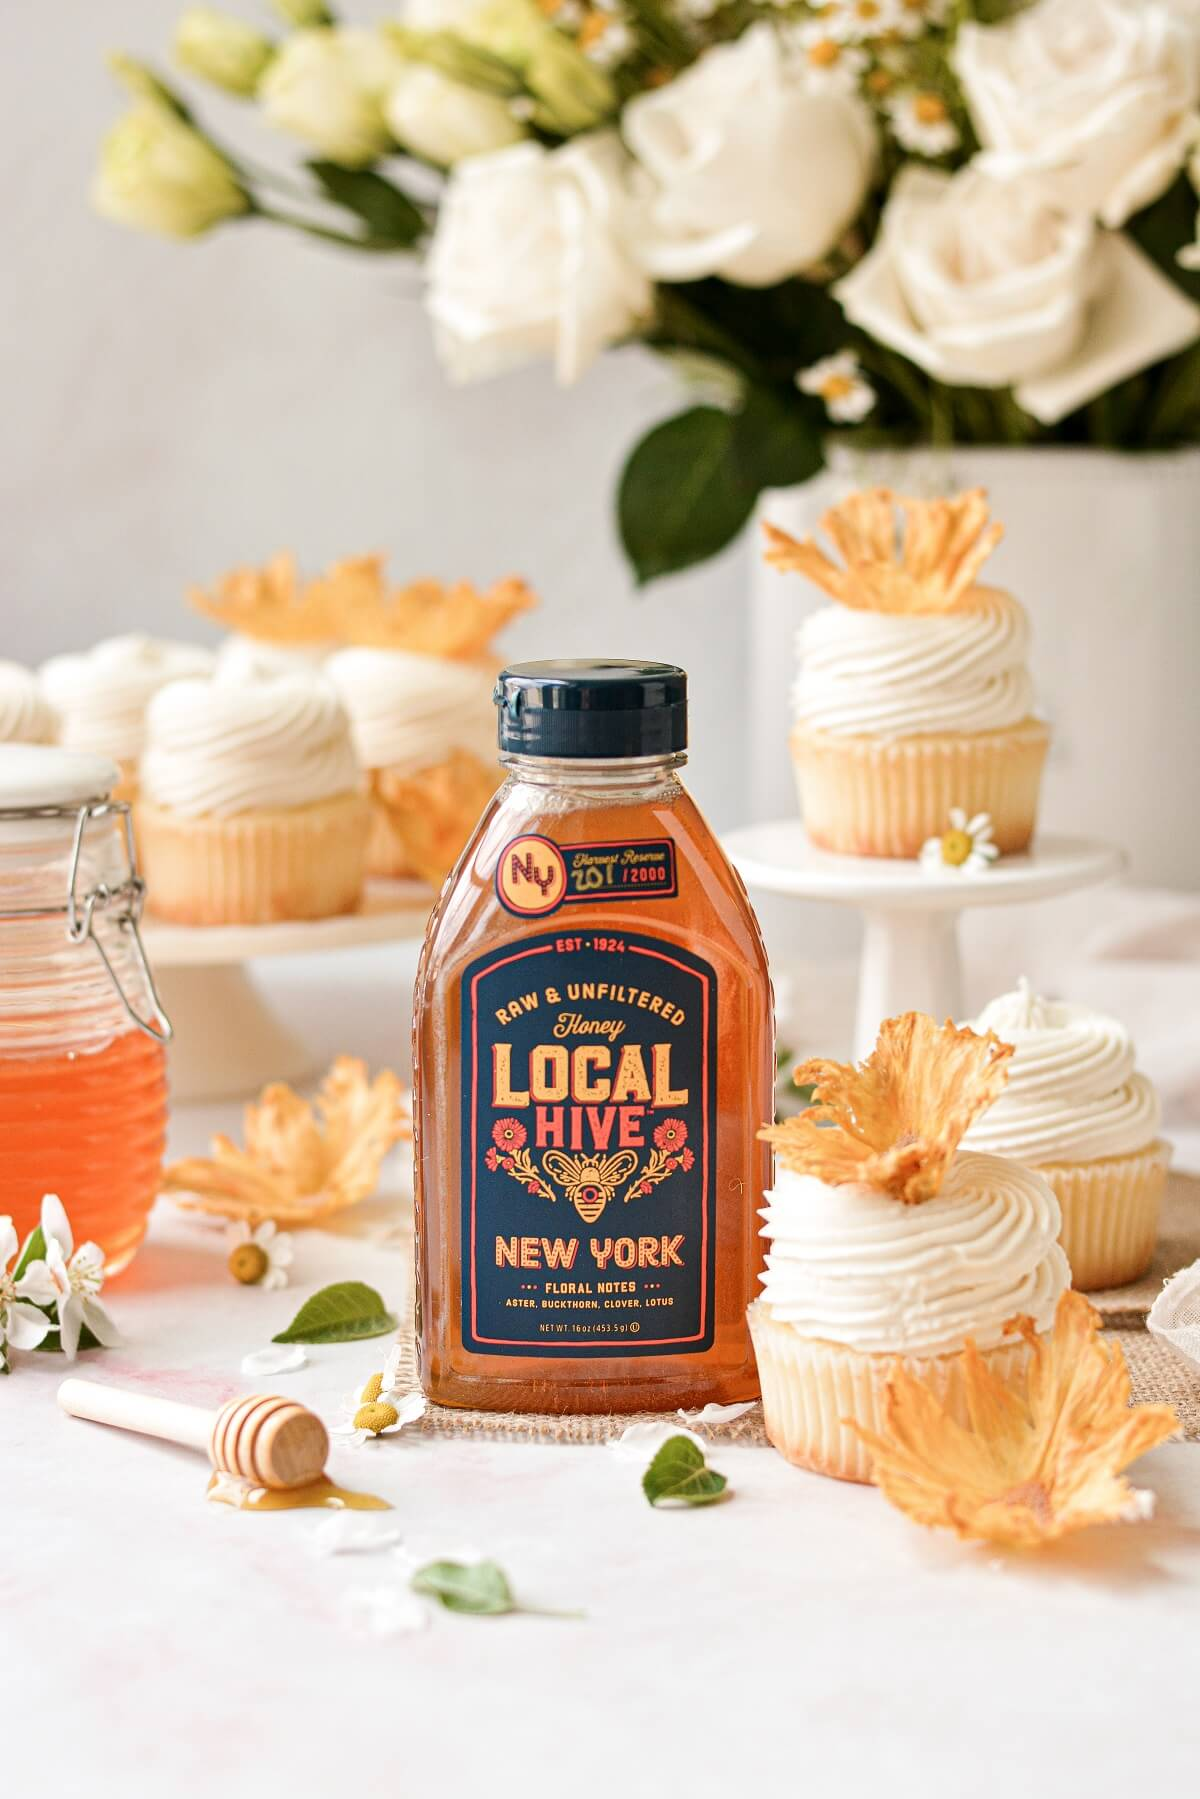 A bottle of Local Hive honey from New York, surrounded by honey lemon cupcakes.